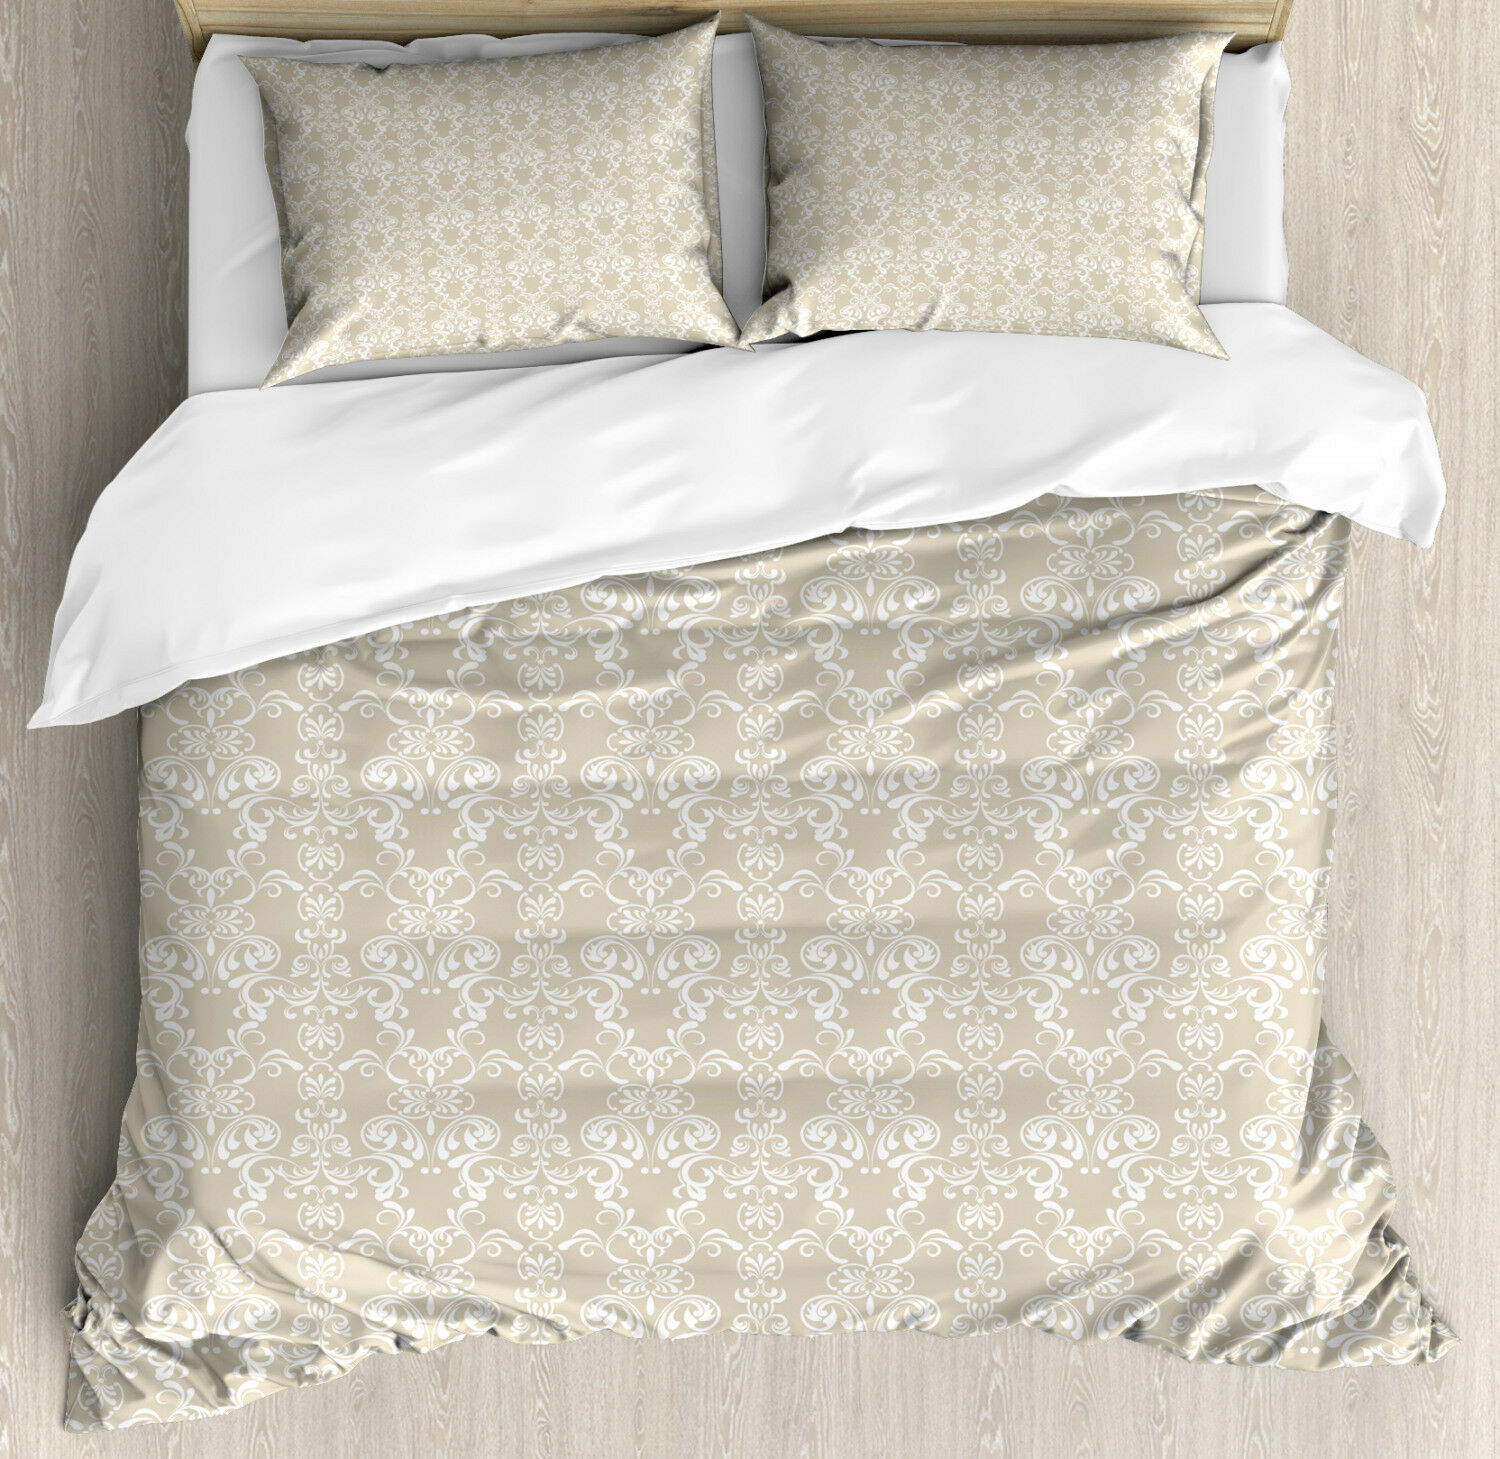 Beige Duvet Cover Set with Pillow Shams Traditional Lace Design Print